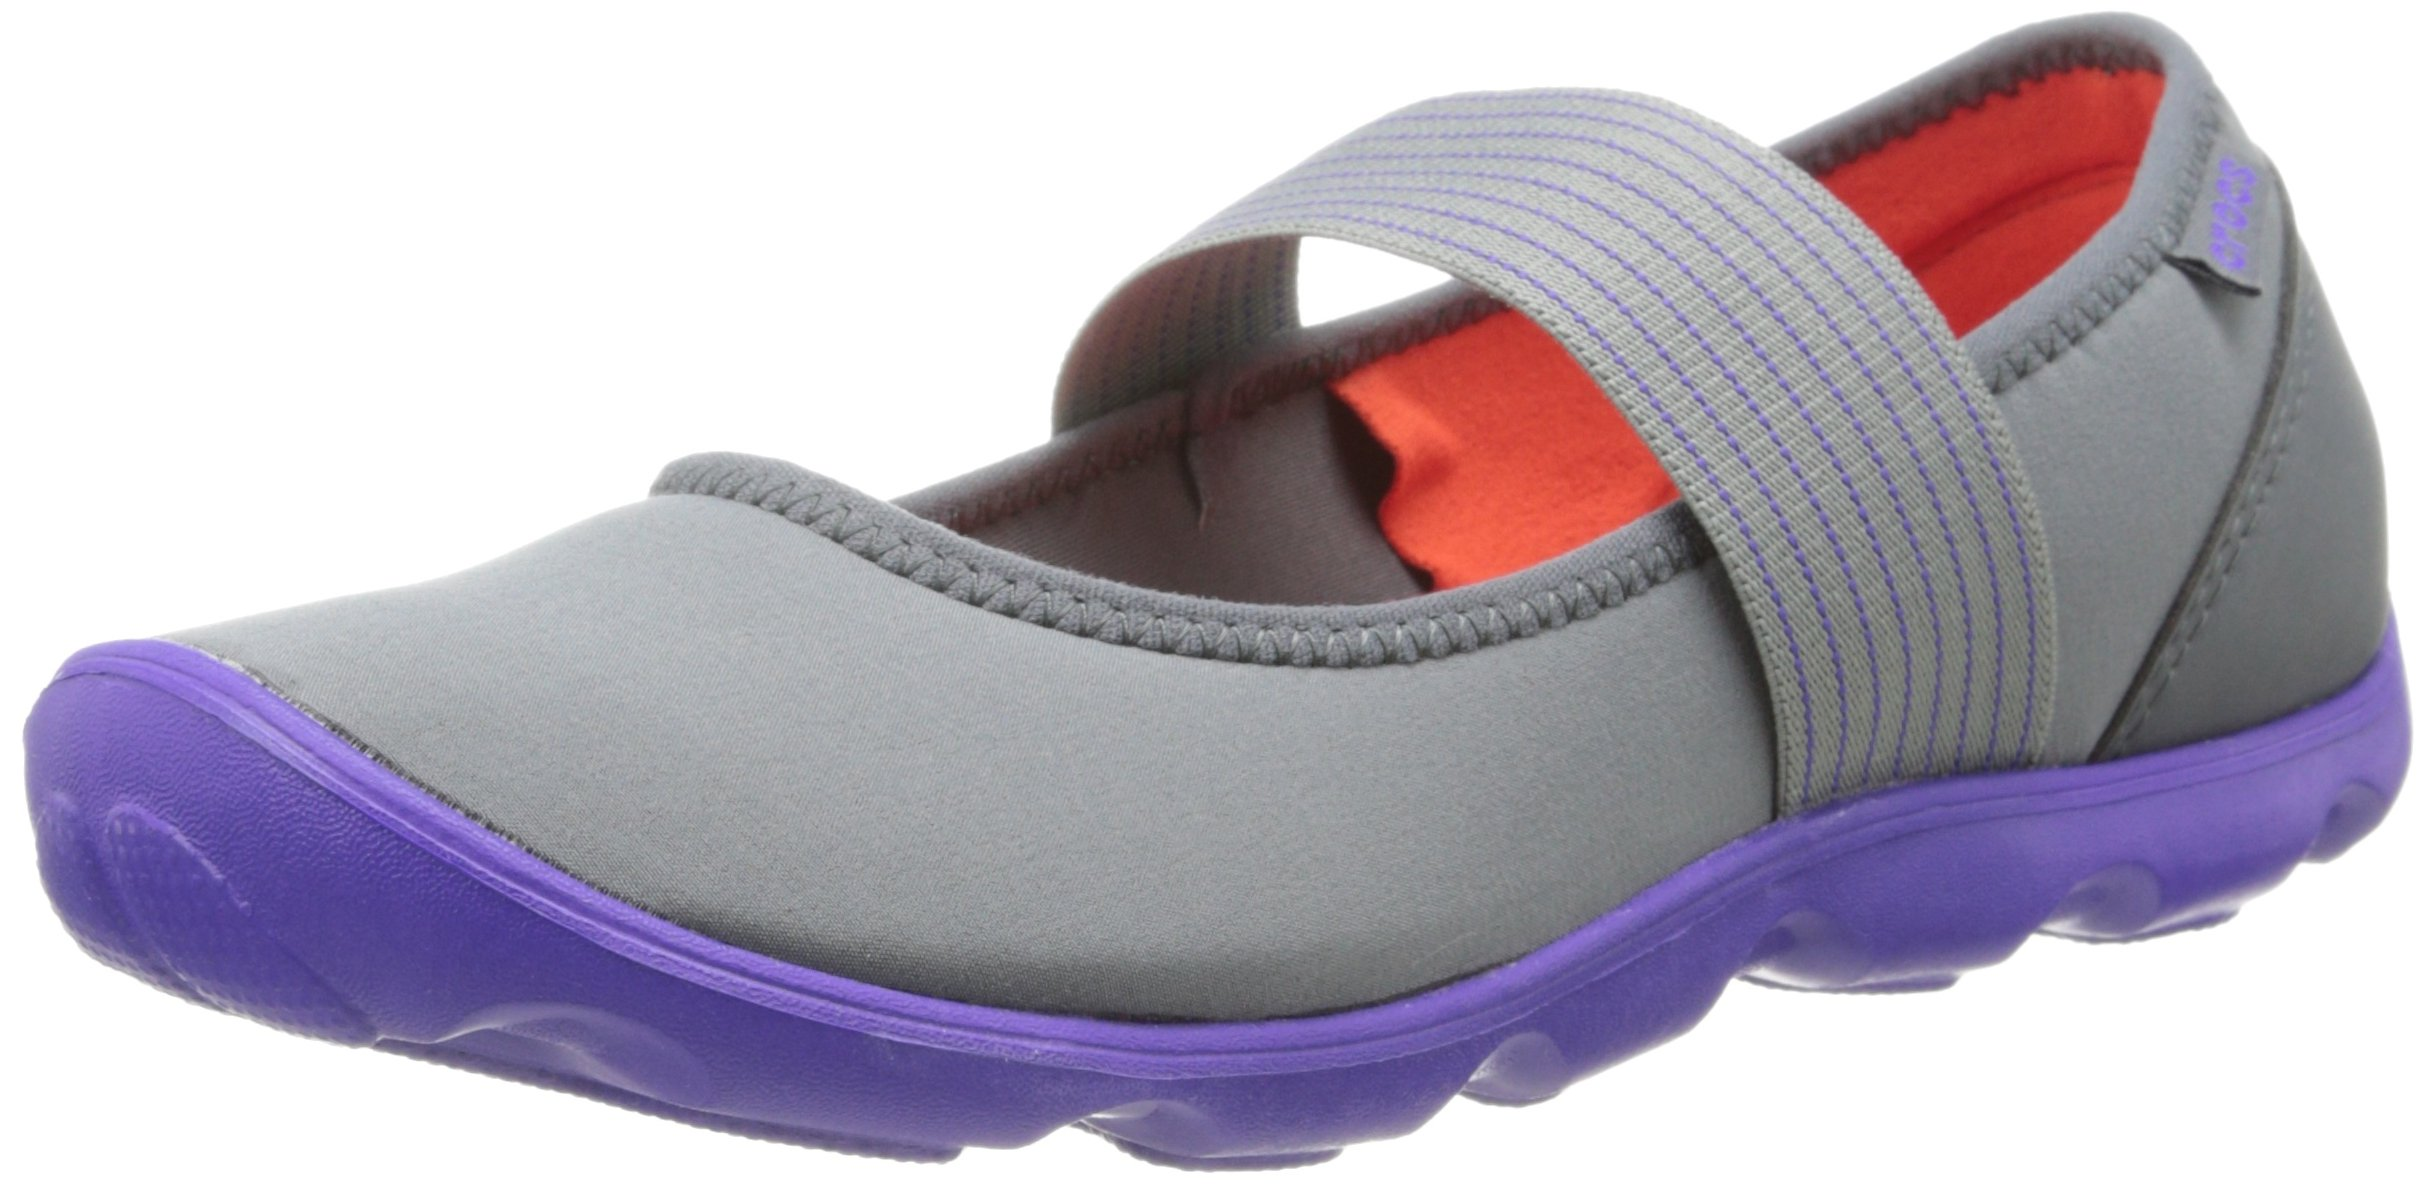 crocs Women's 16025 Duet Busy Day Mary Jane Flat,Graphite/Ultraviolet,5 M US